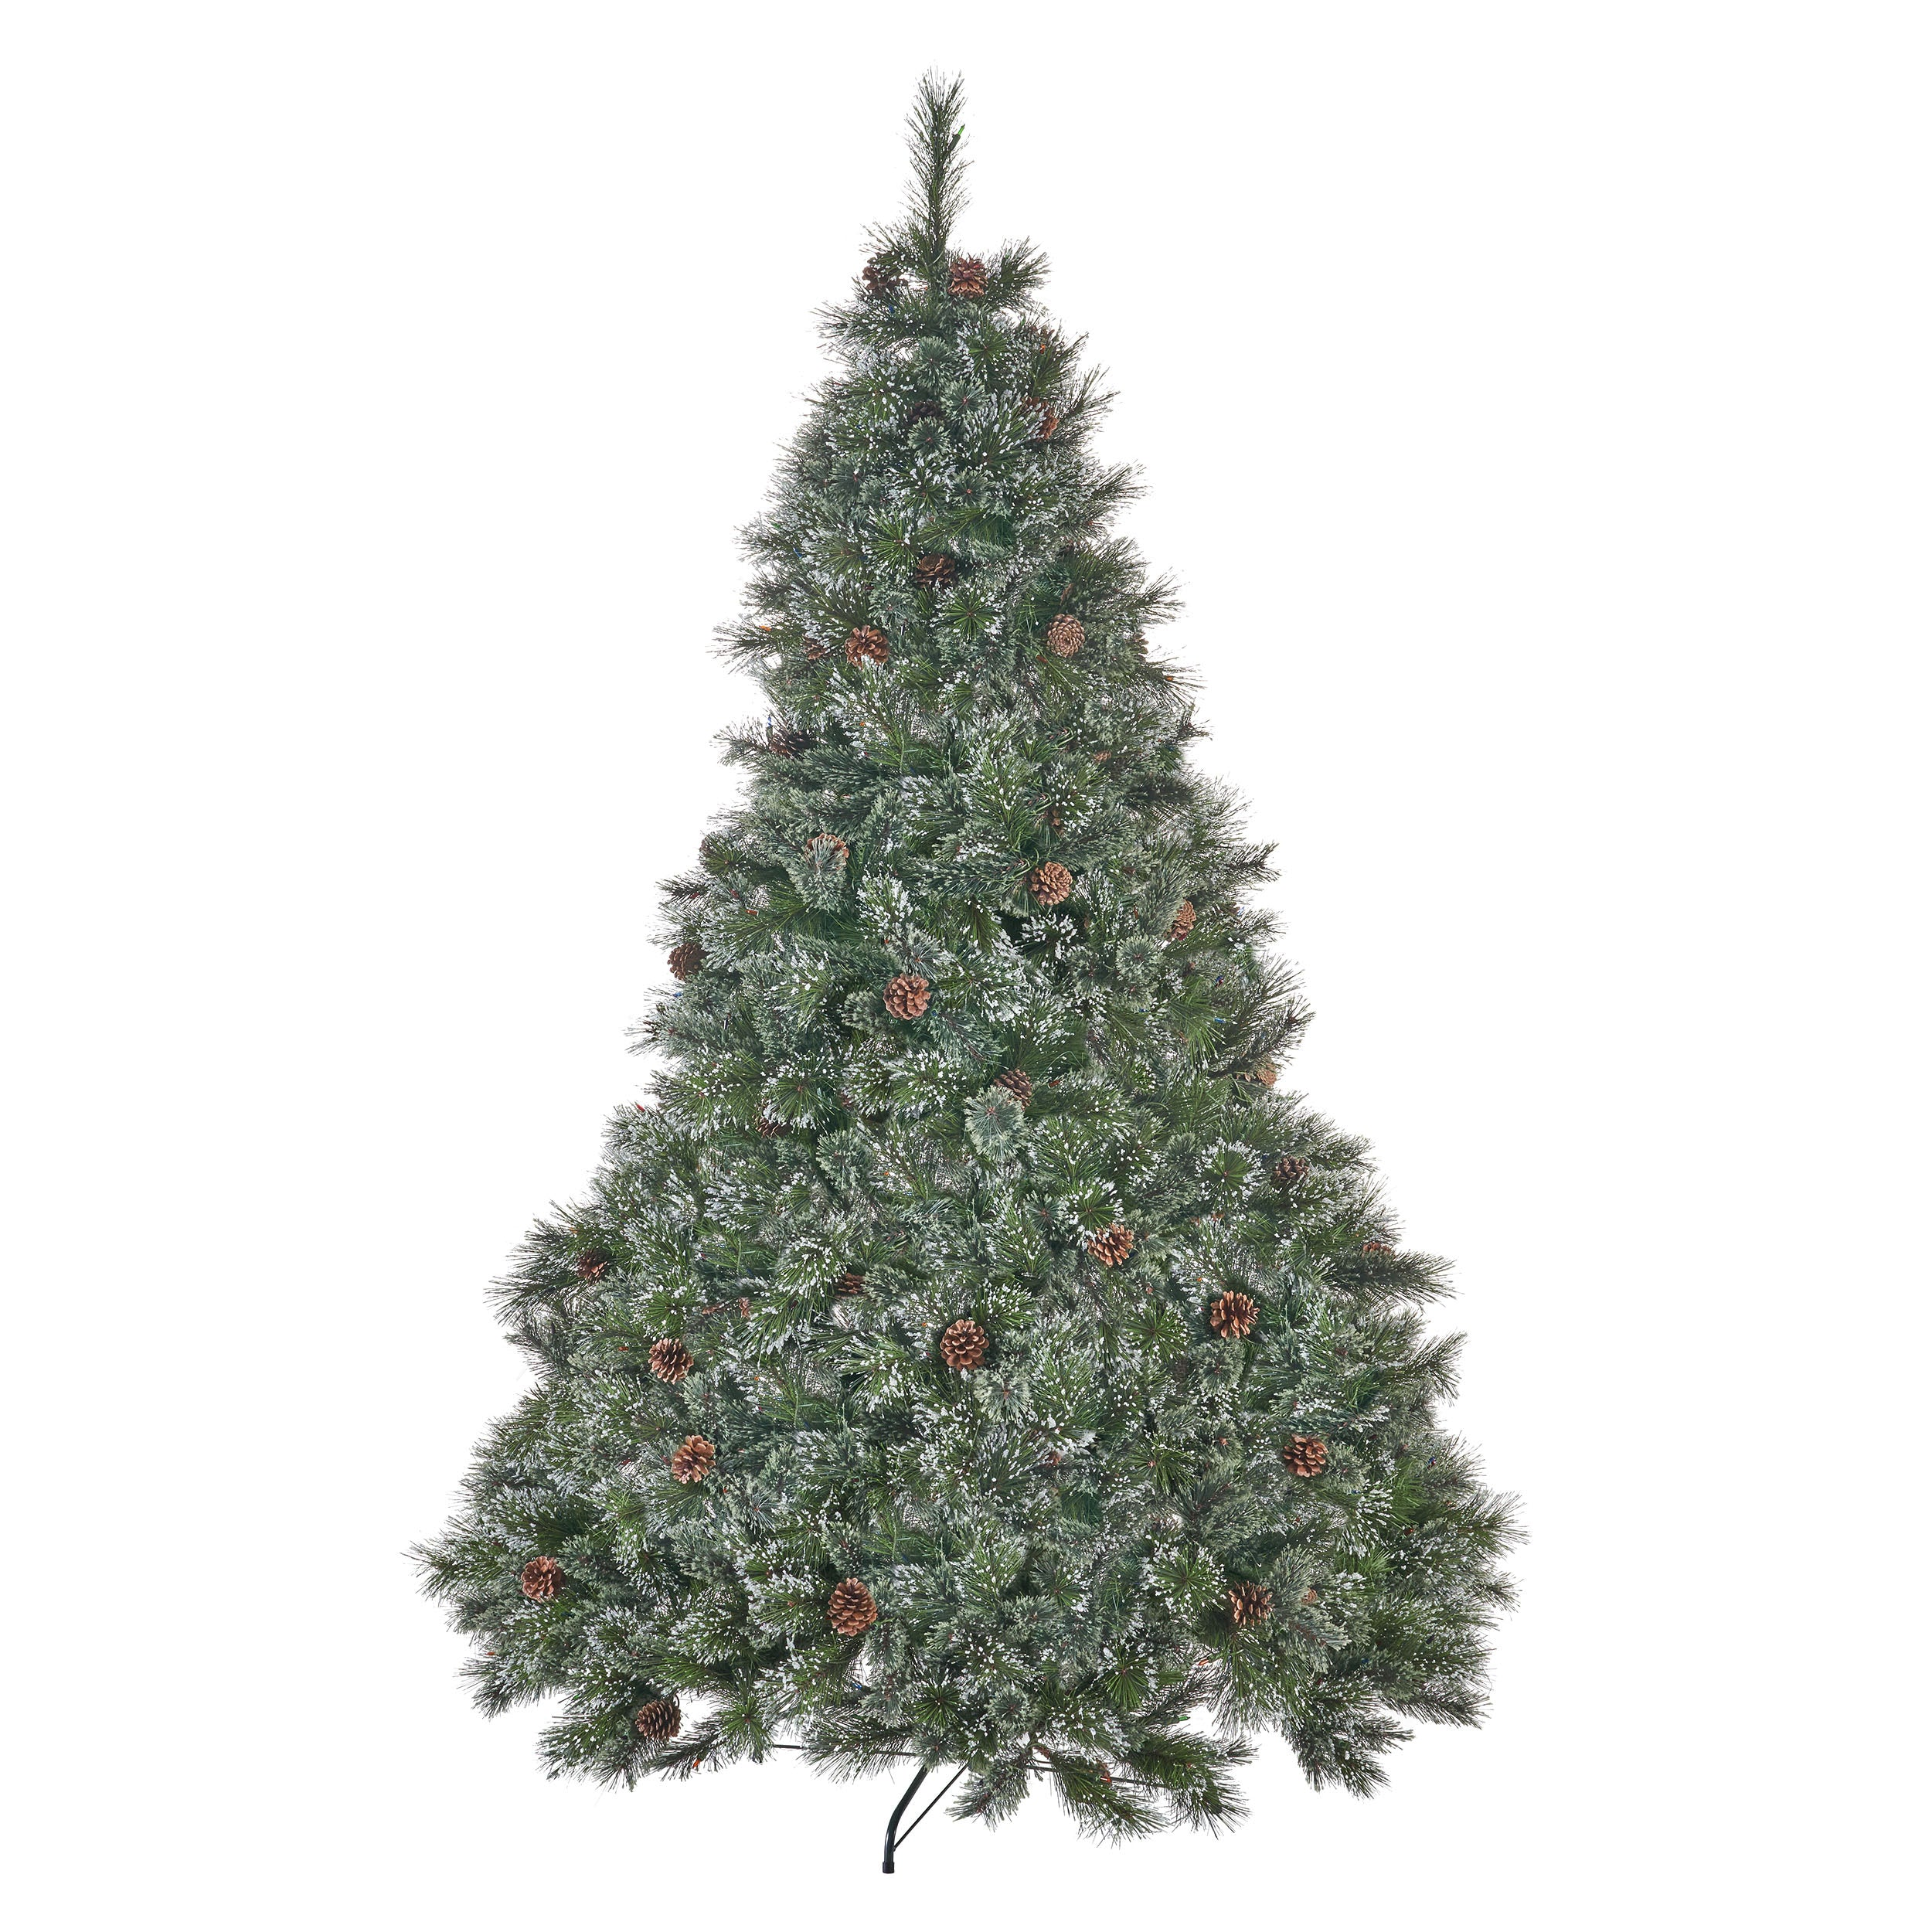 7 foot Cashmere Pine and Mixed Needles Hinged Artificial Christmas Tree with Snowy Branches and Pinecones Multicolor Lights